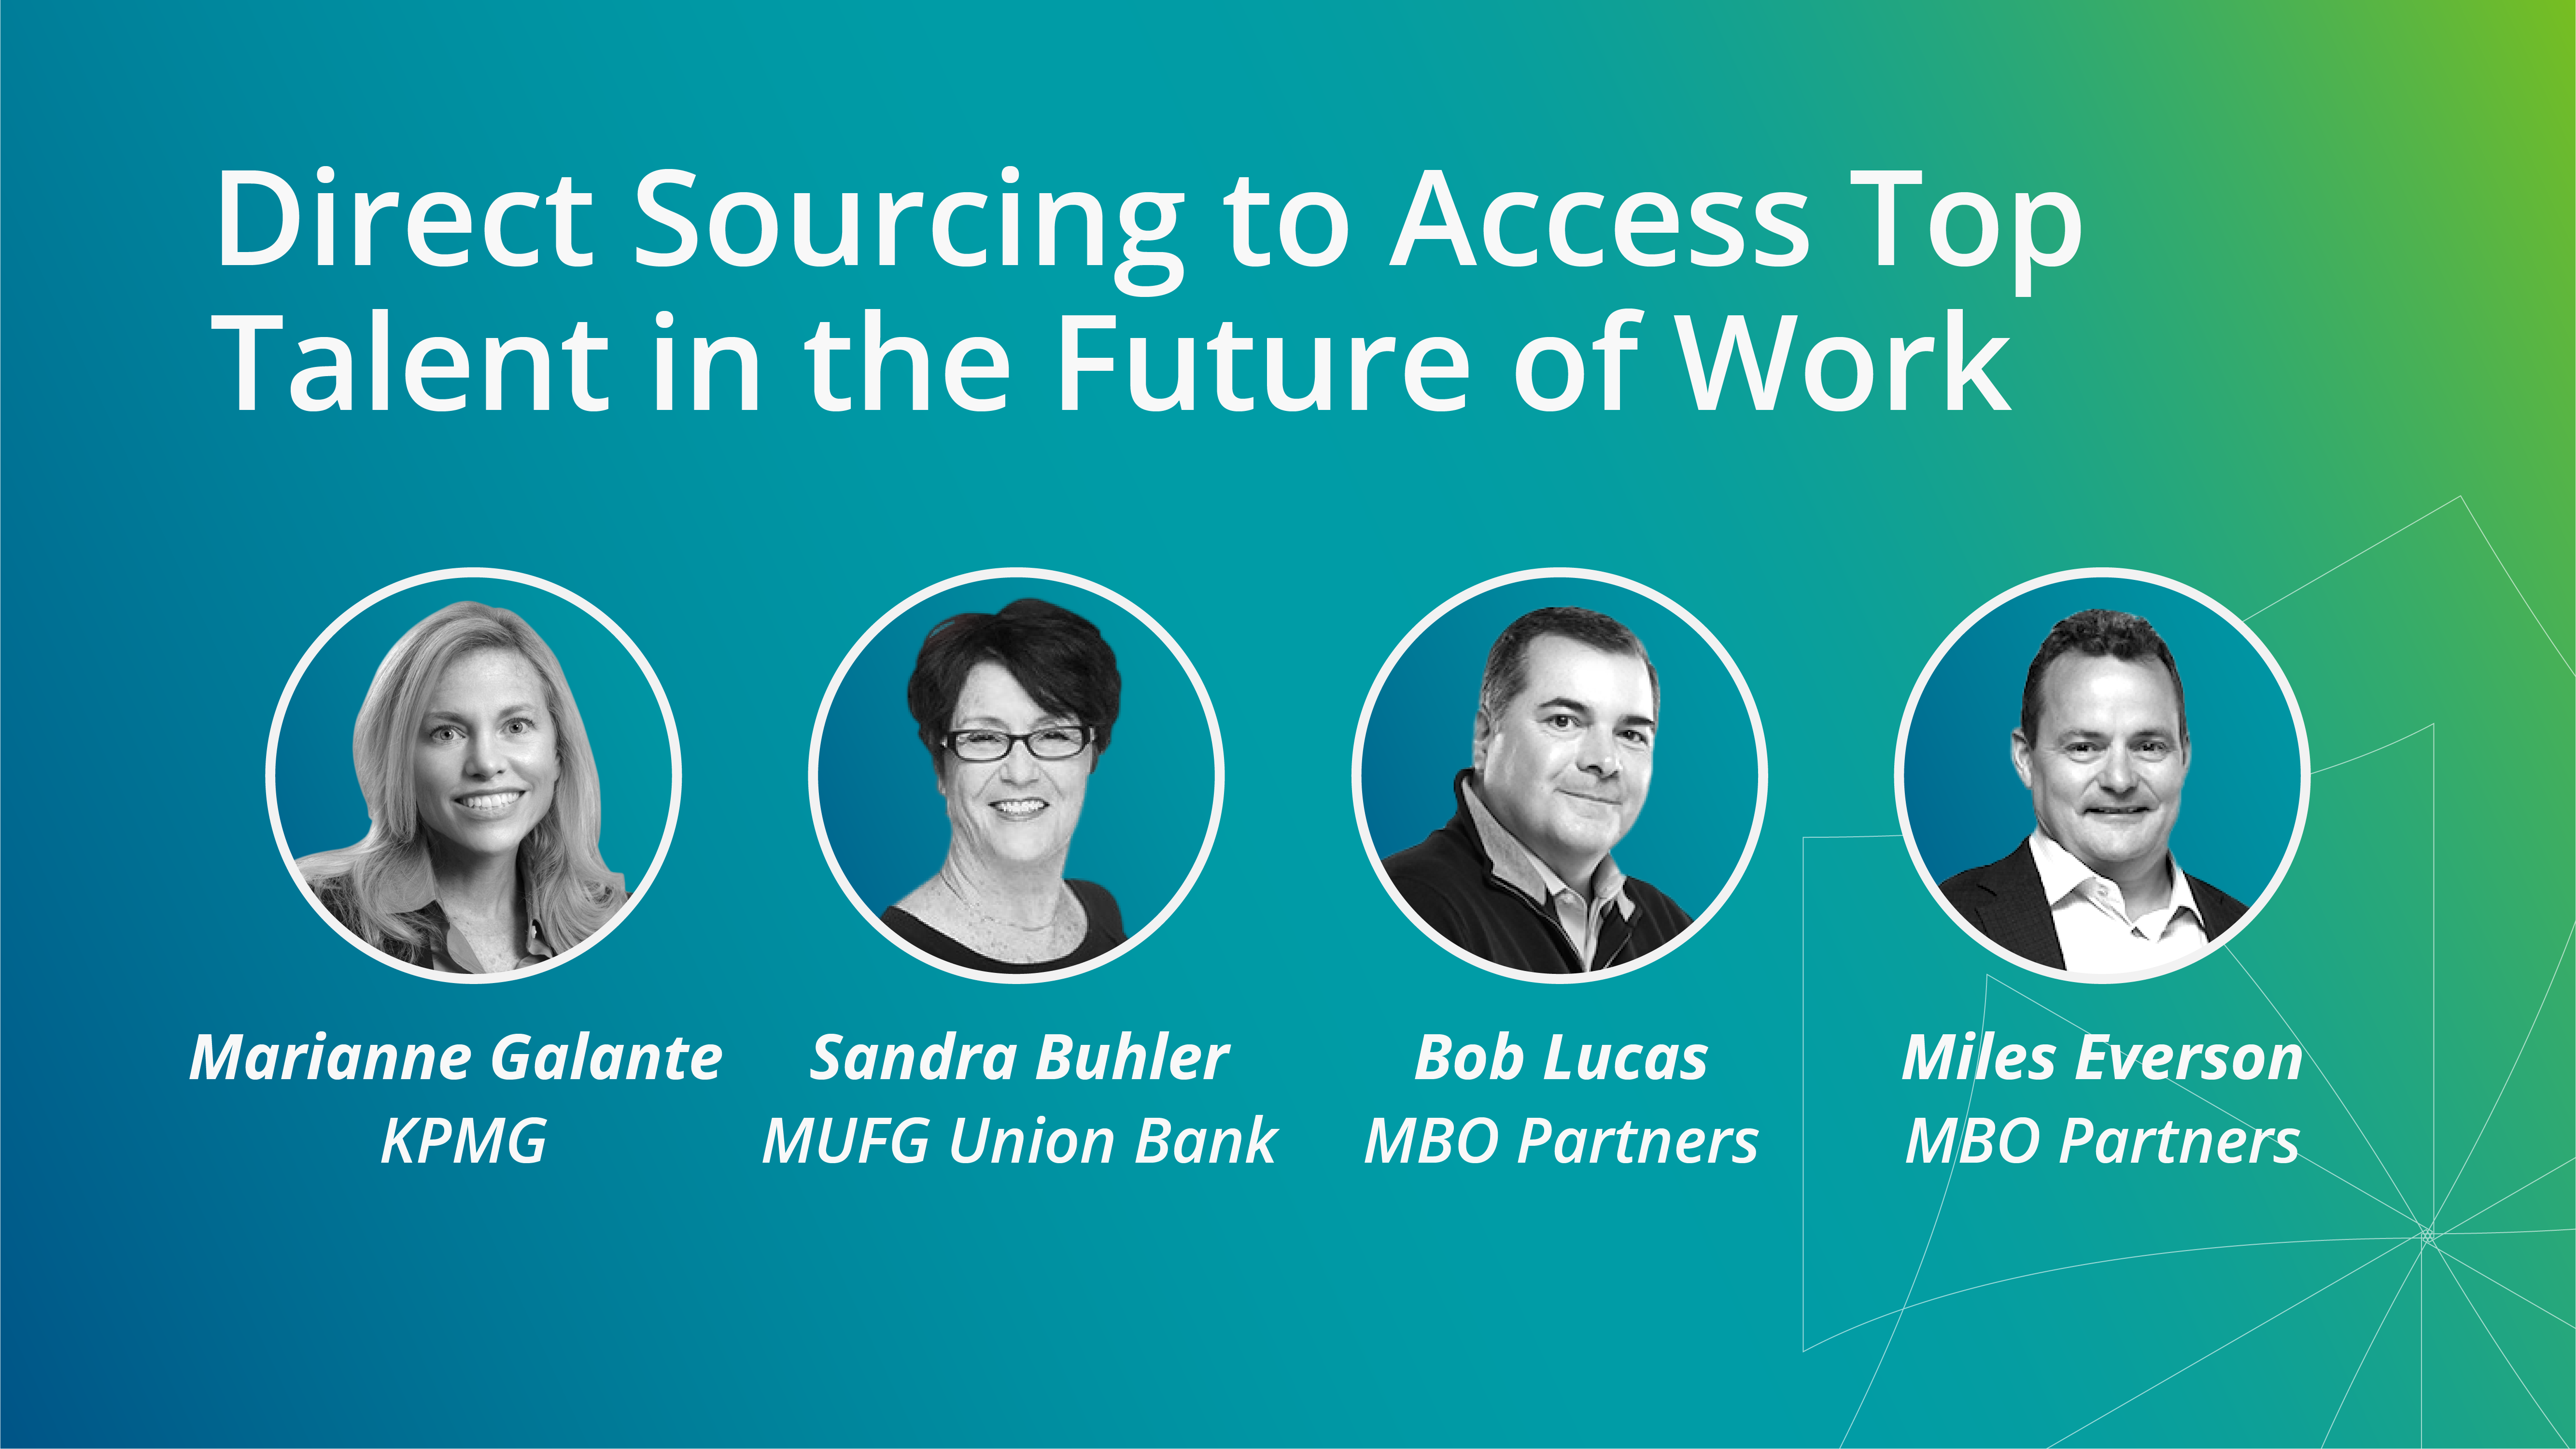 Direct Sourcing to Access Top Talent in the Future of Work